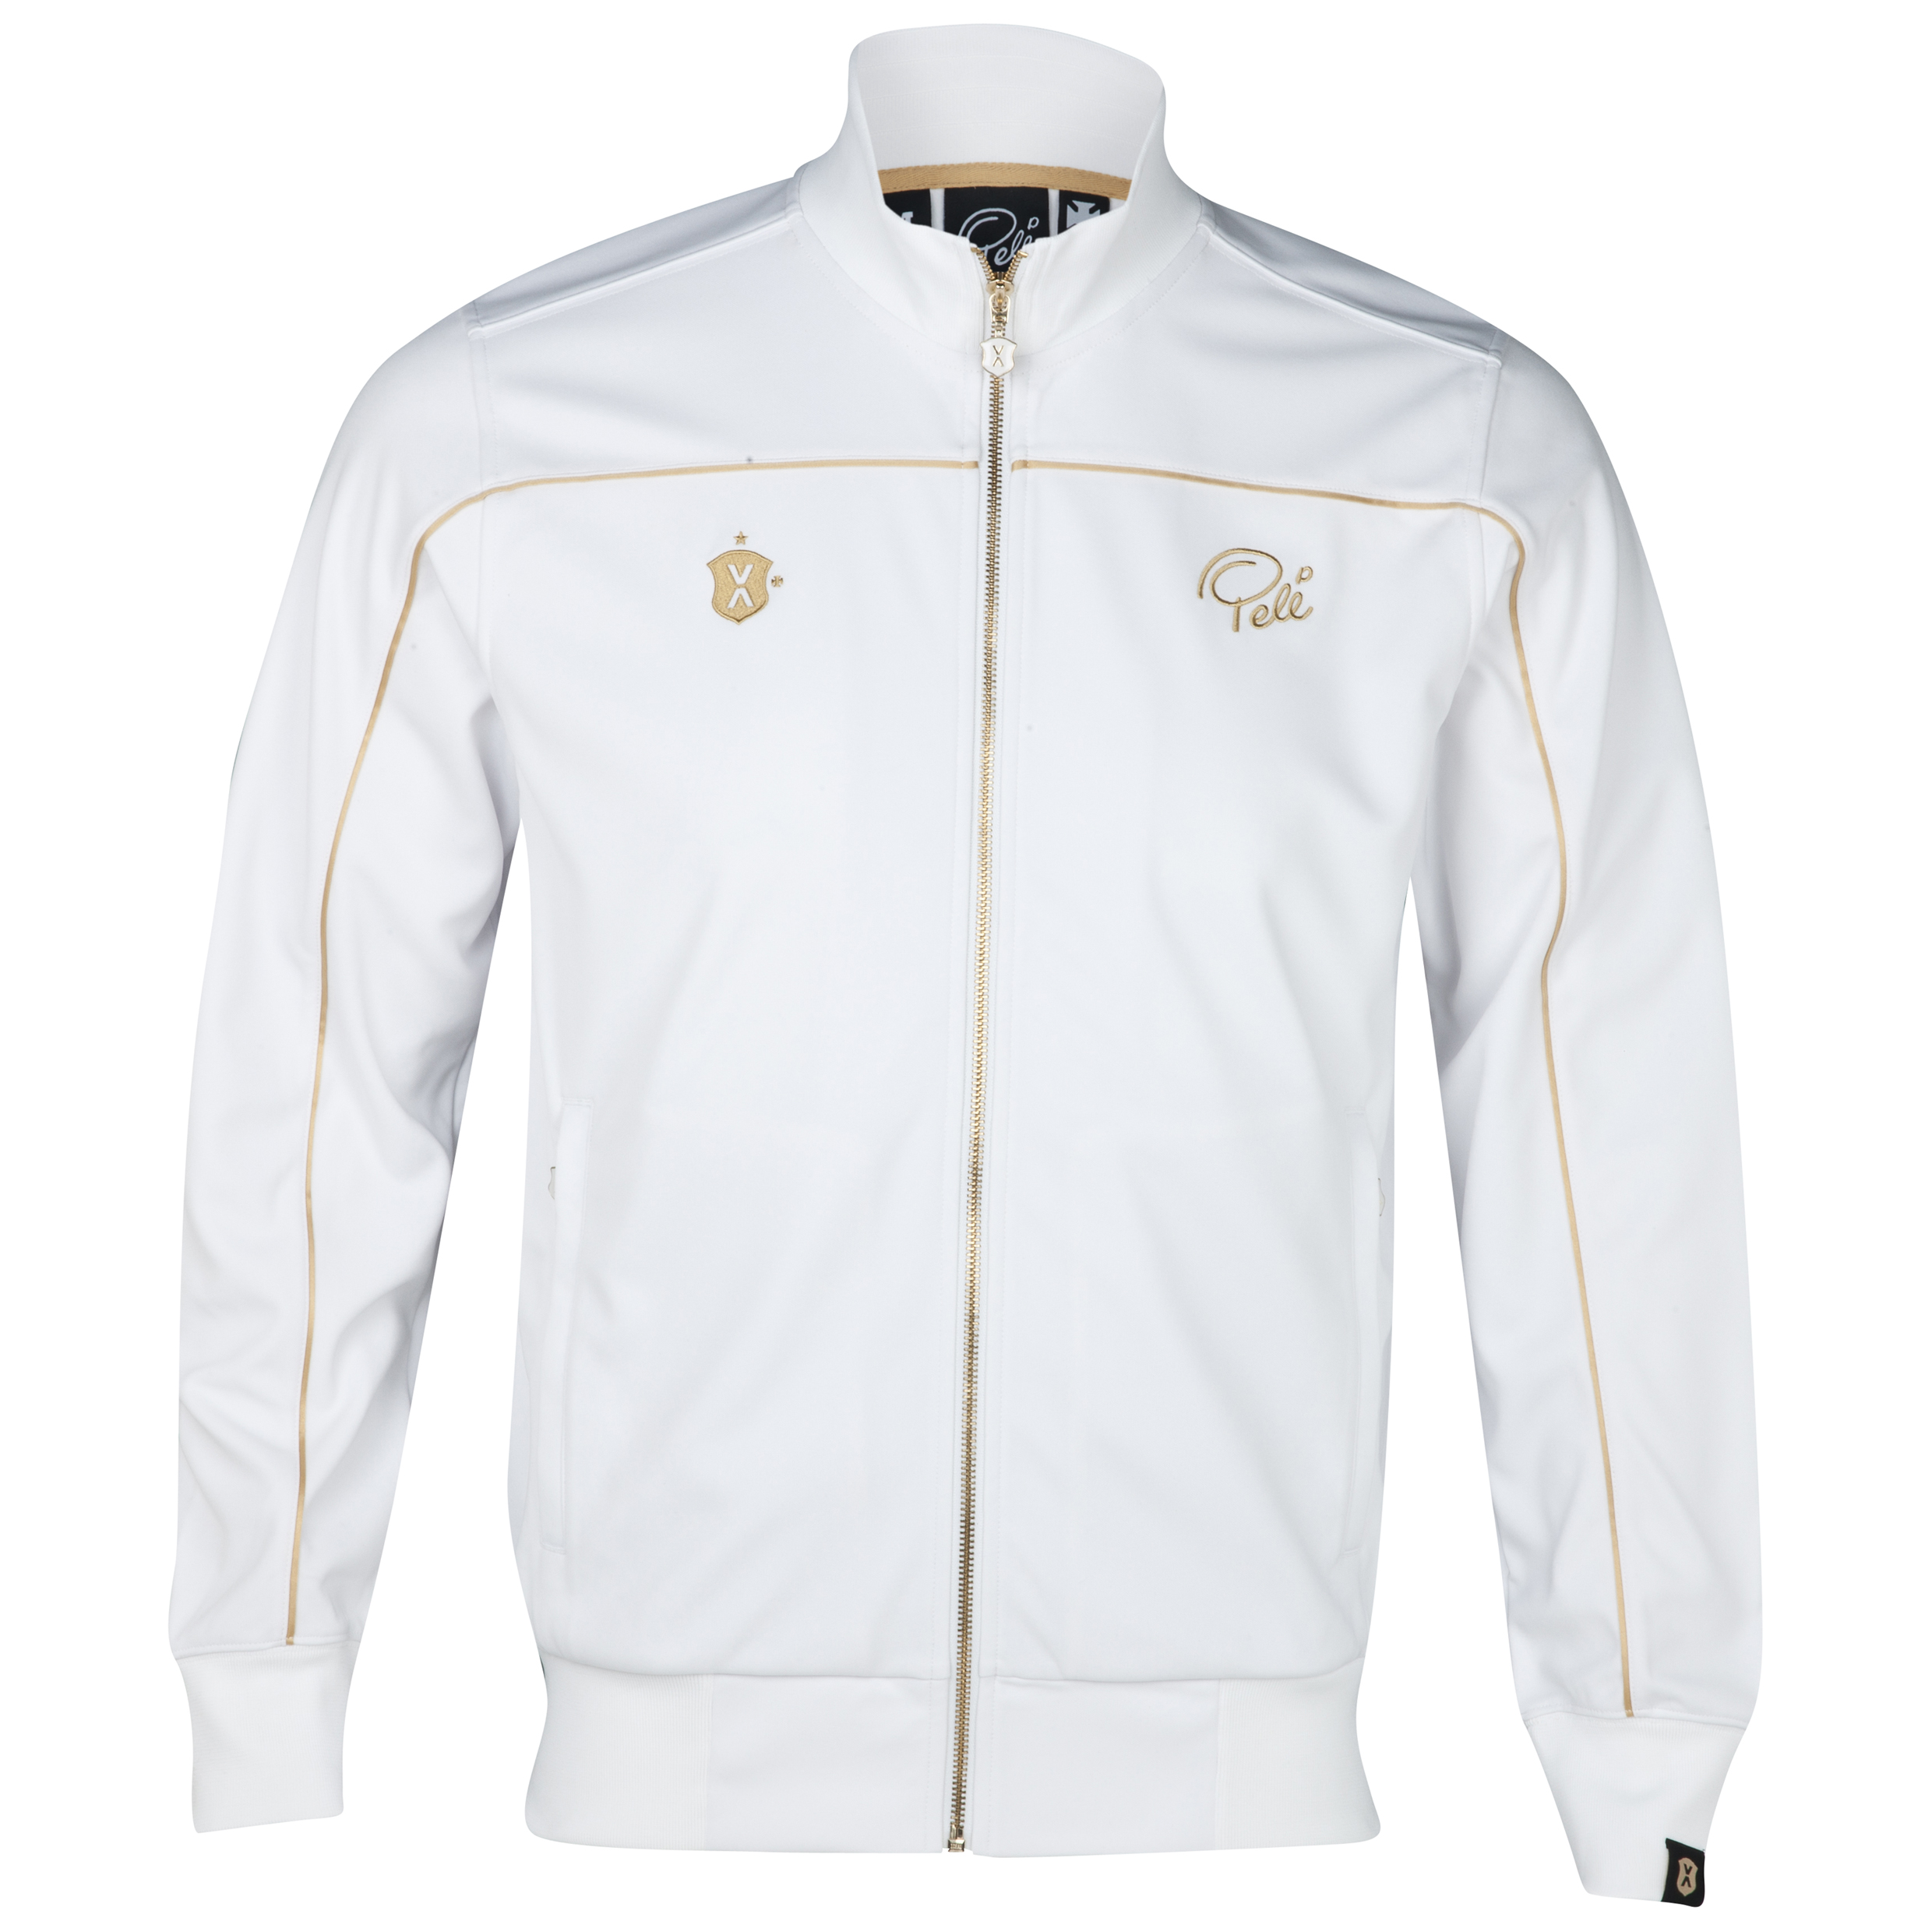 Pele Sports Street Track Jacket - Snow White